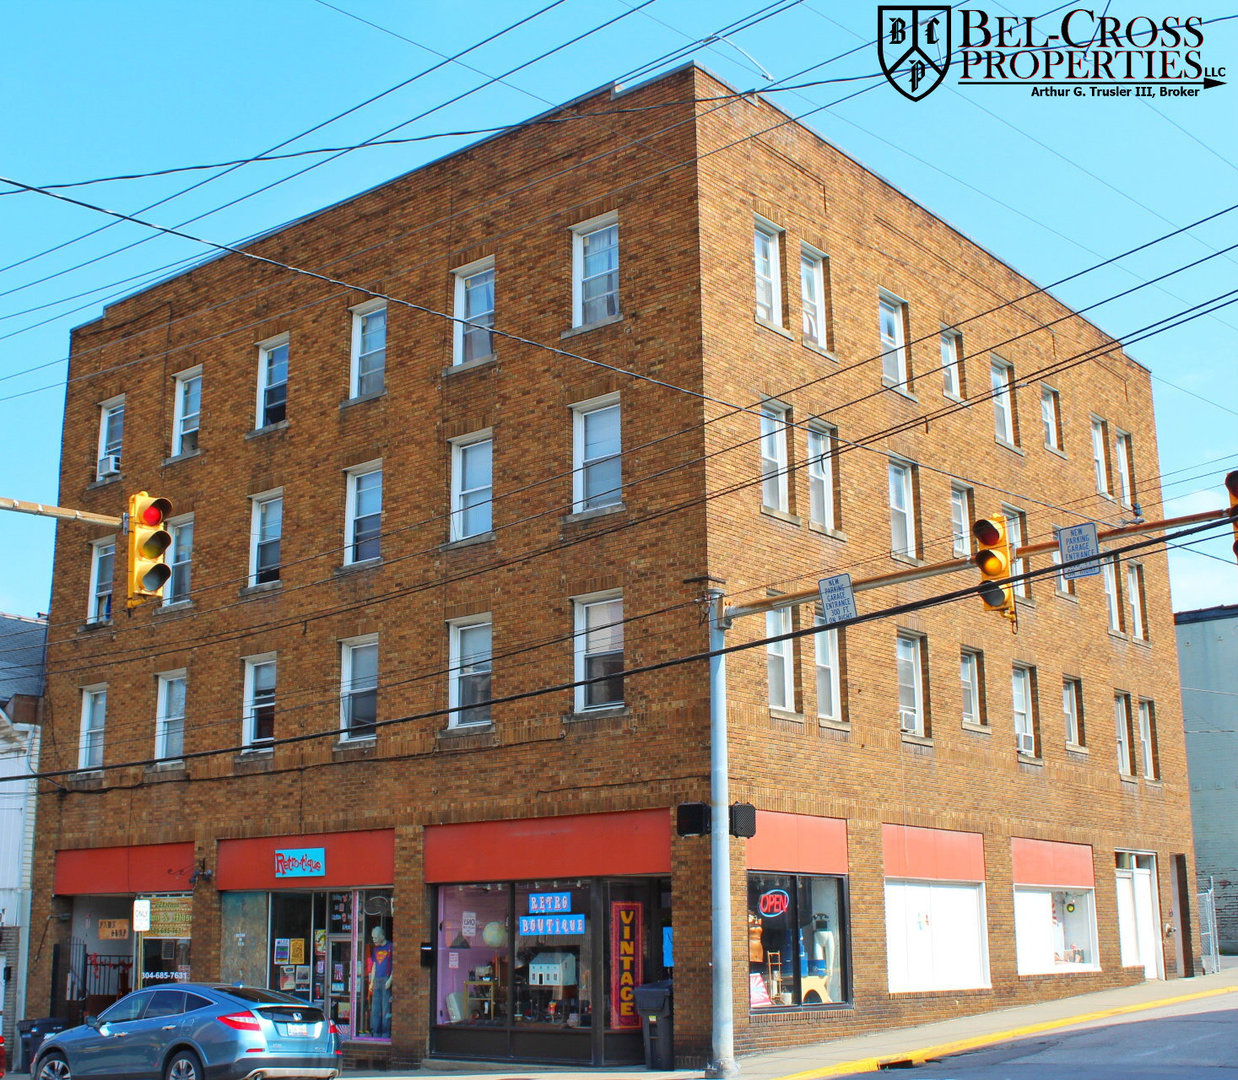 311 spruce st apt 2 morgantown wv 26505 for One bedroom pet friendly apartments morgantown wv